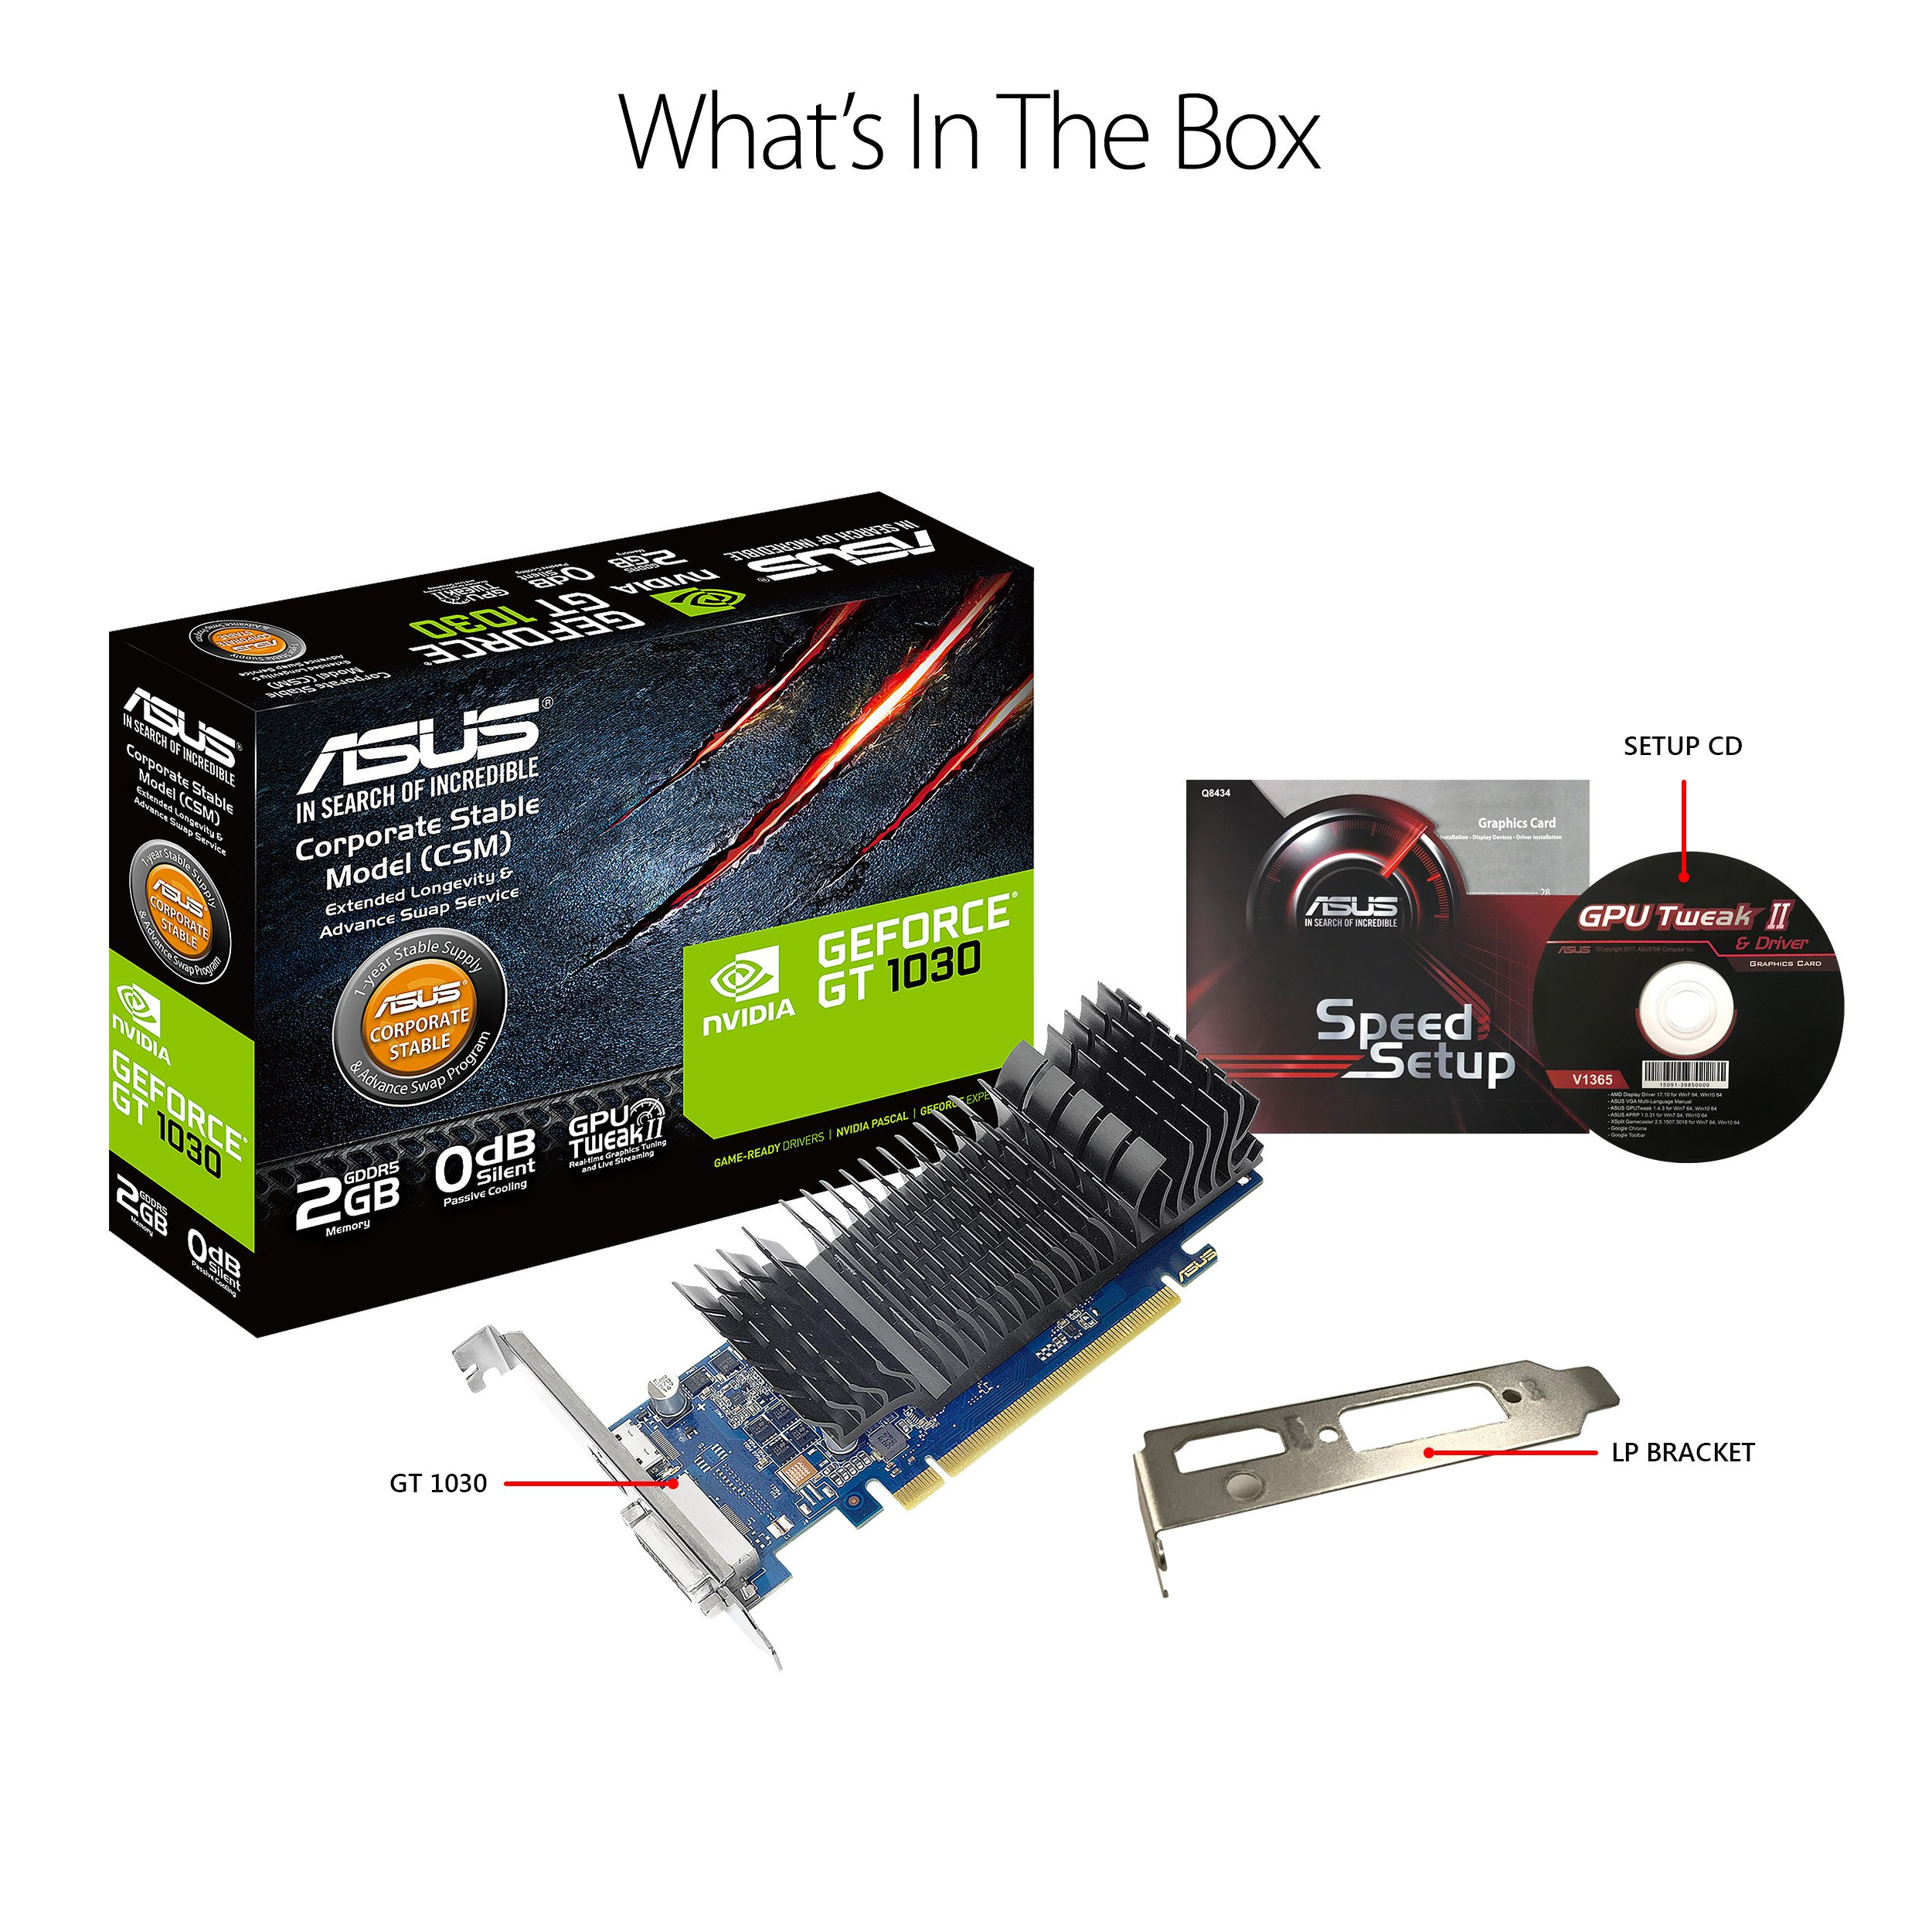 ASUS GeForce GT 1030 2GB GDDR5 HDMI DVI Graphics Card (GT1030-2G-CSM) by Asus (Image #5)